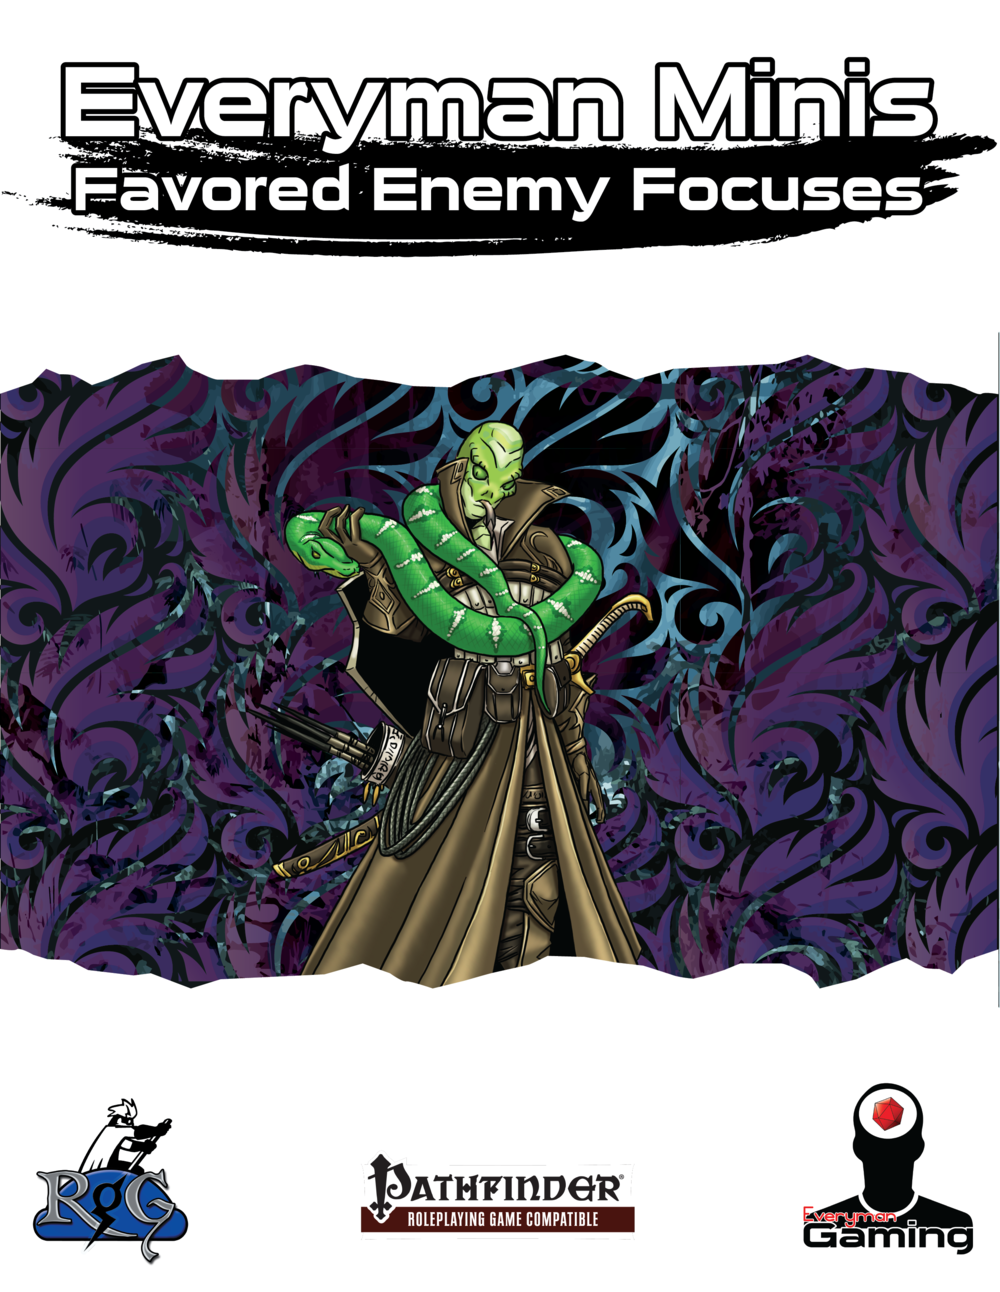 29 EMM Favored Enemy Focuses.png